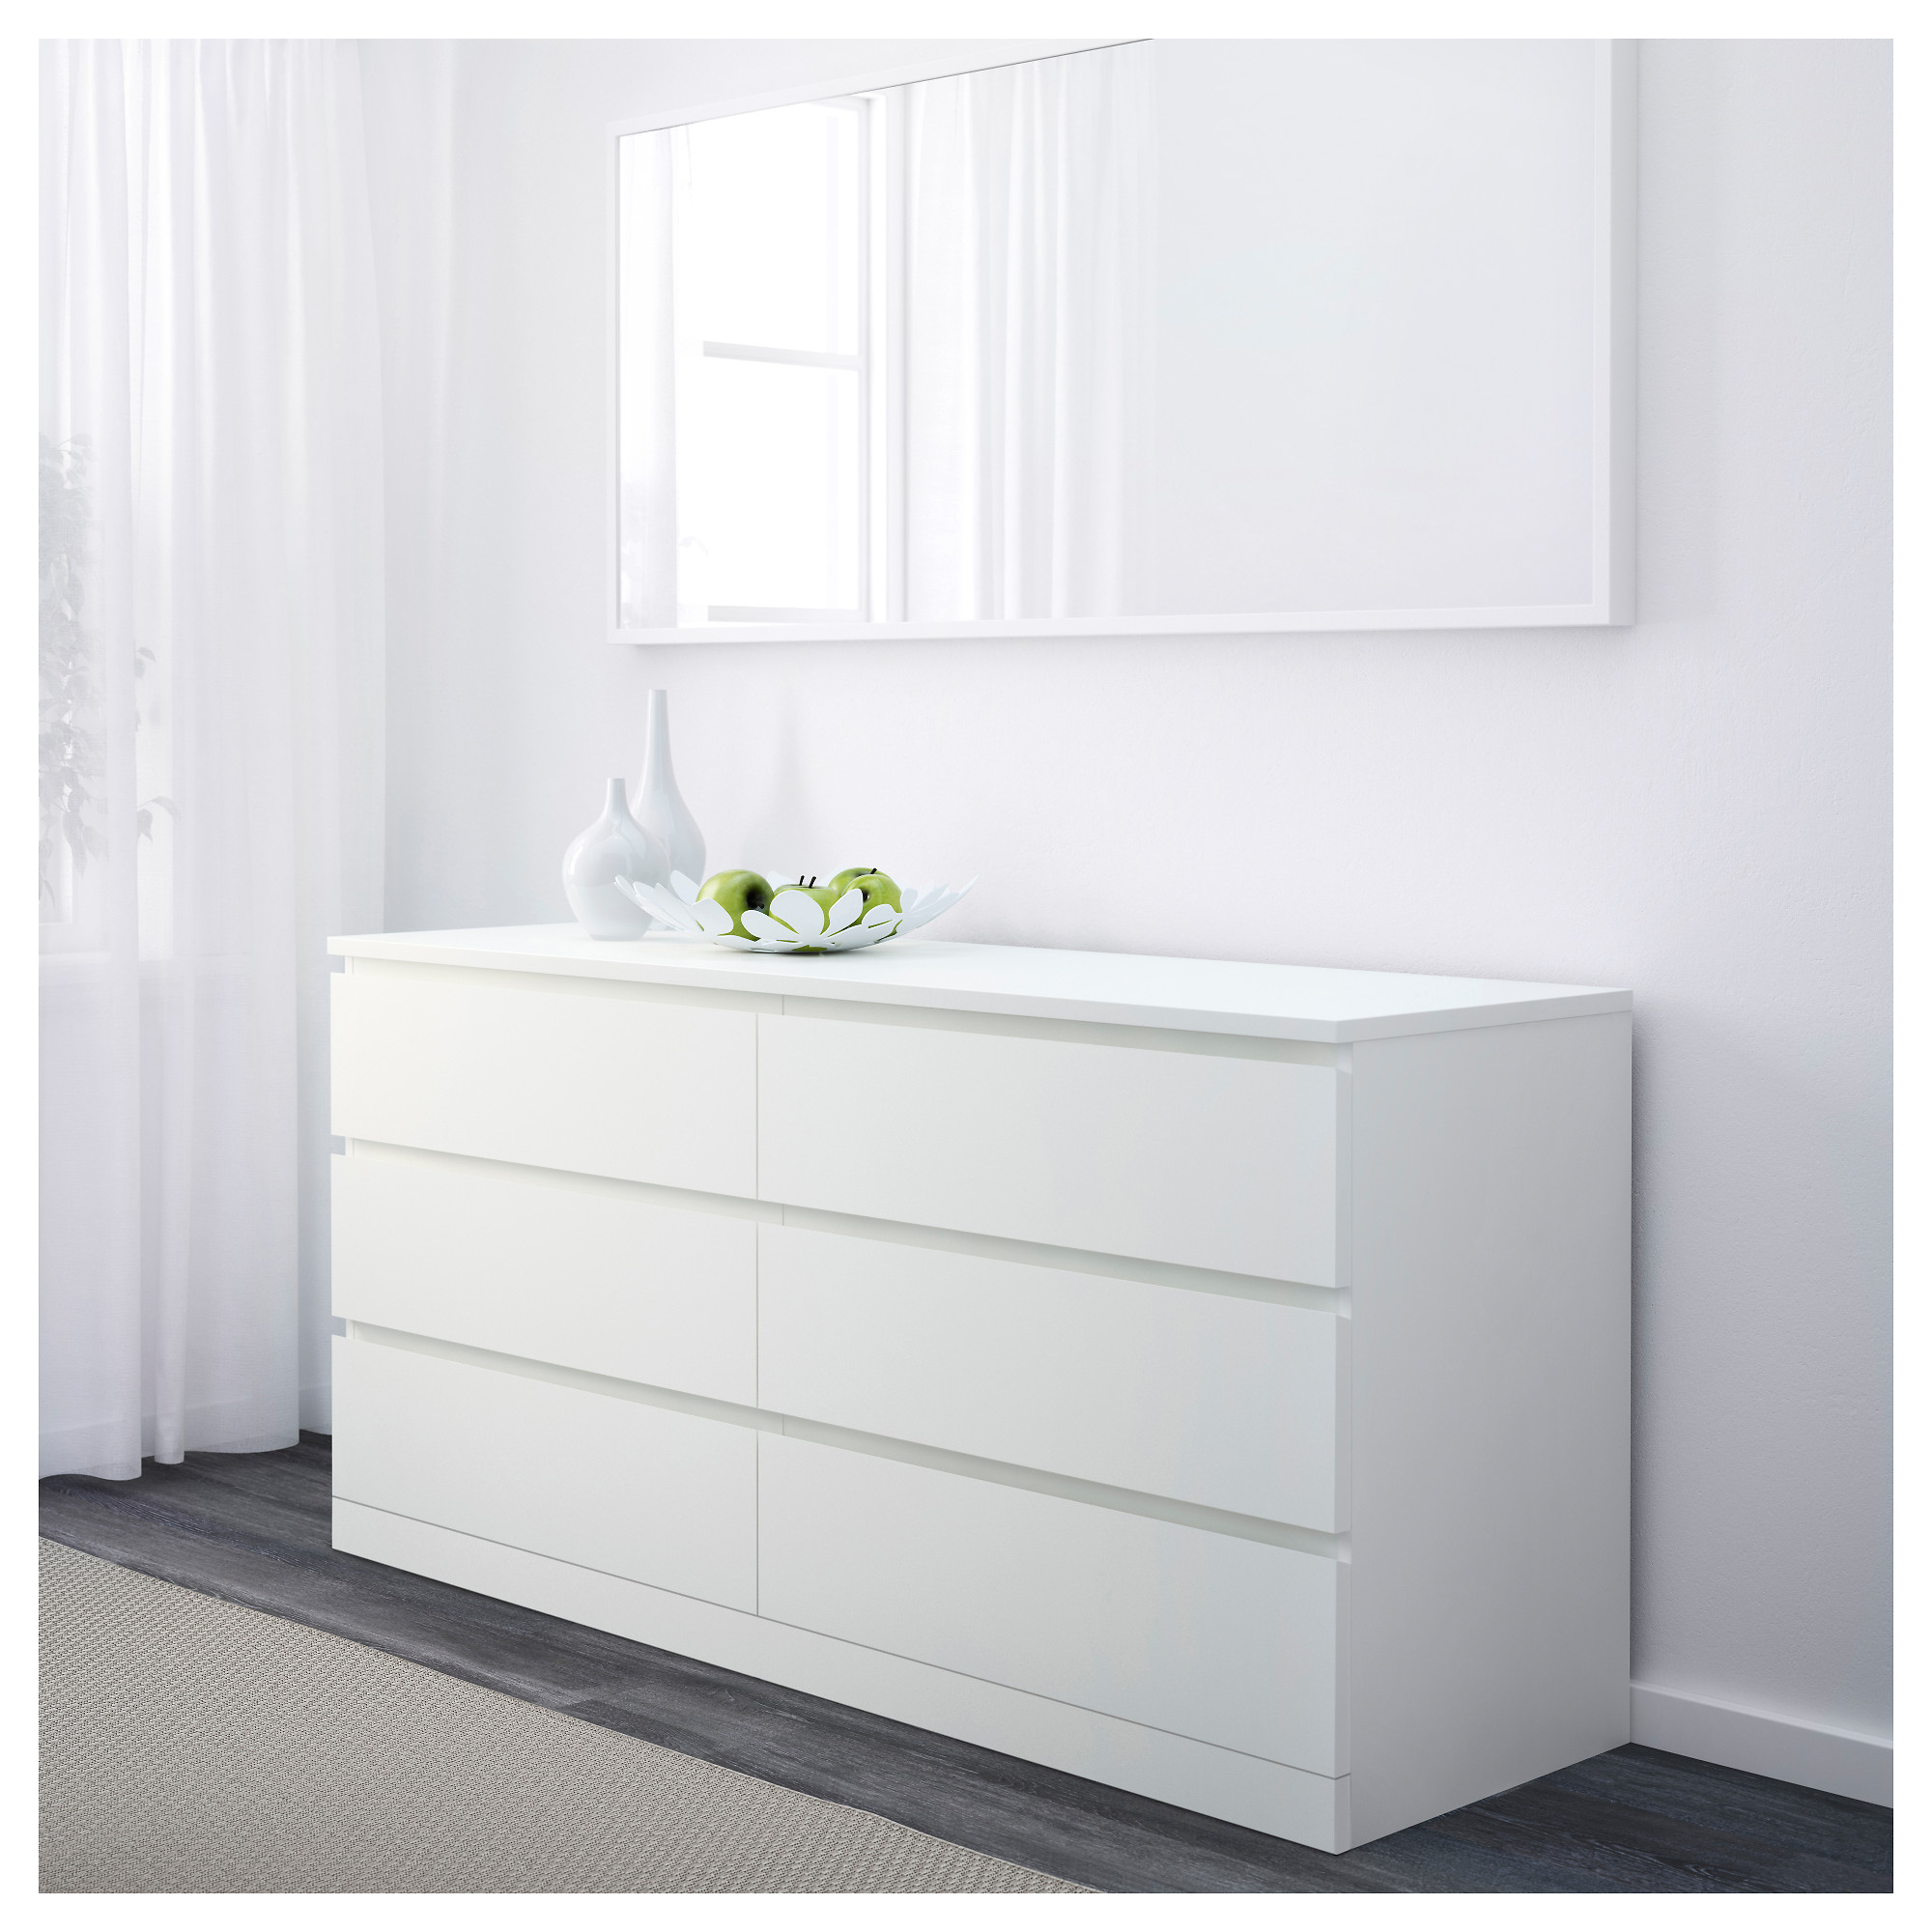 Malm 3 drawer dresser white bestdressers 2017 for Bedroom dressers ikea